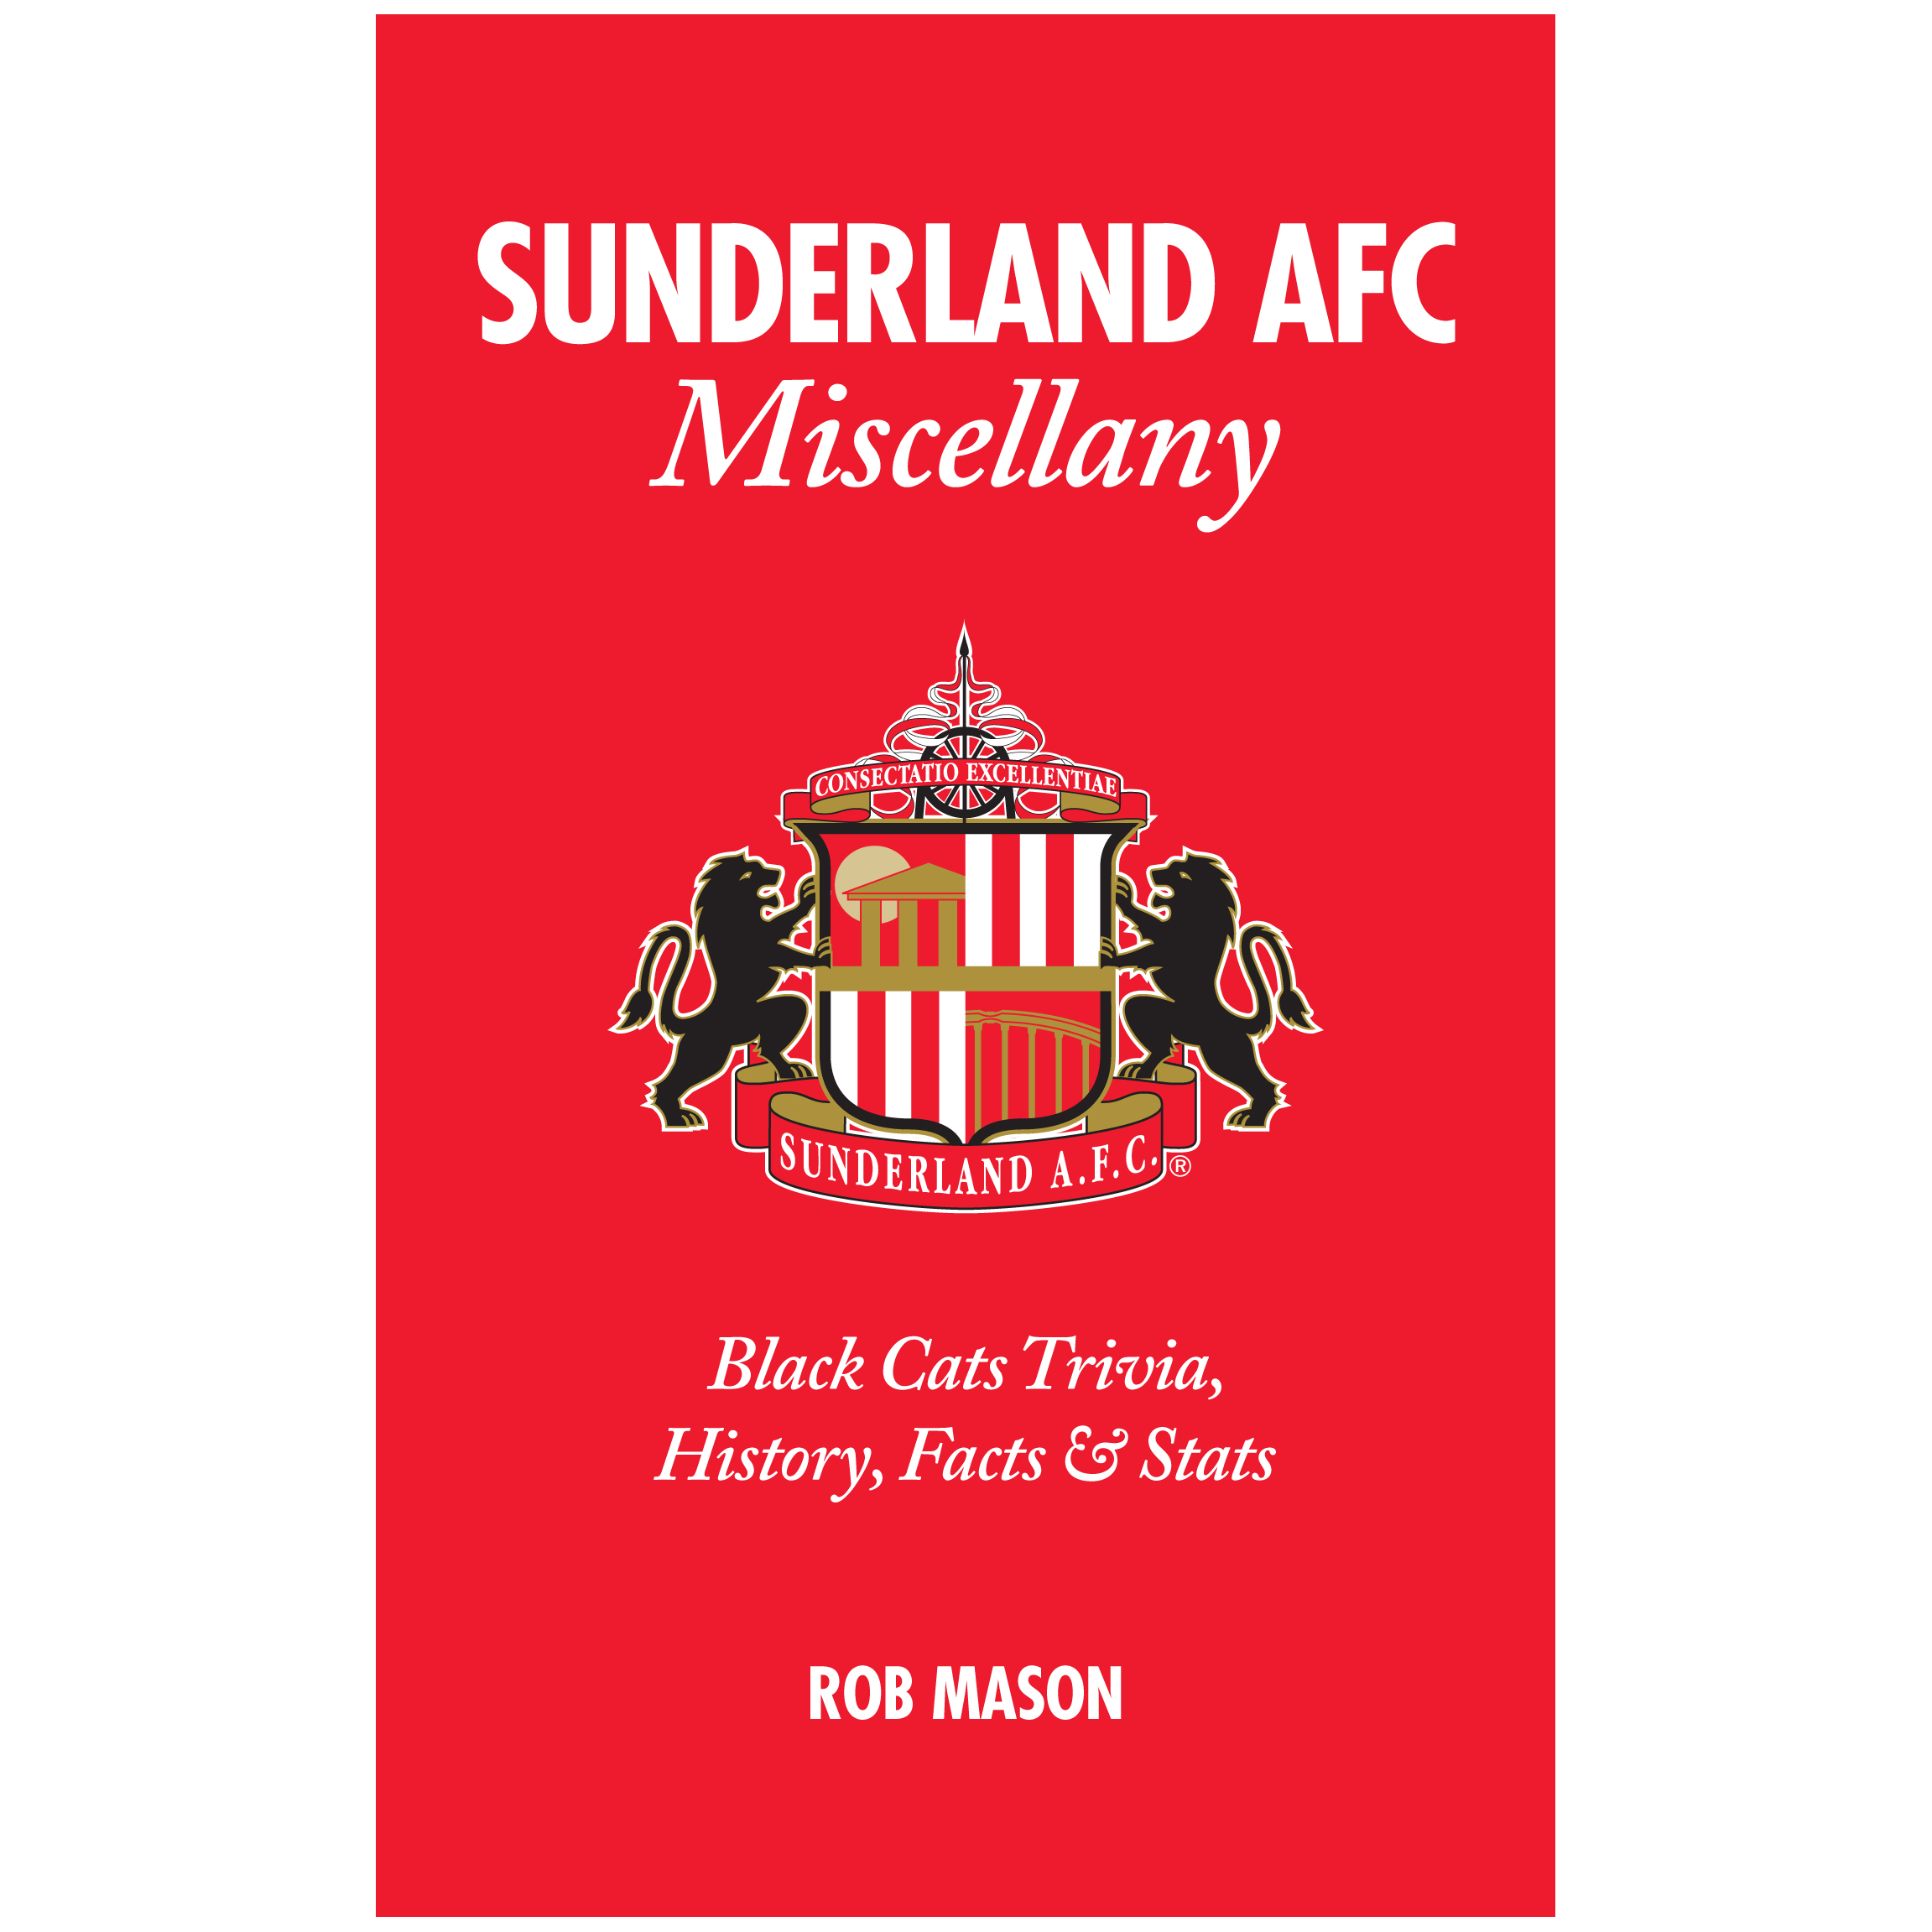 Sunderland AFC Miscellany Book